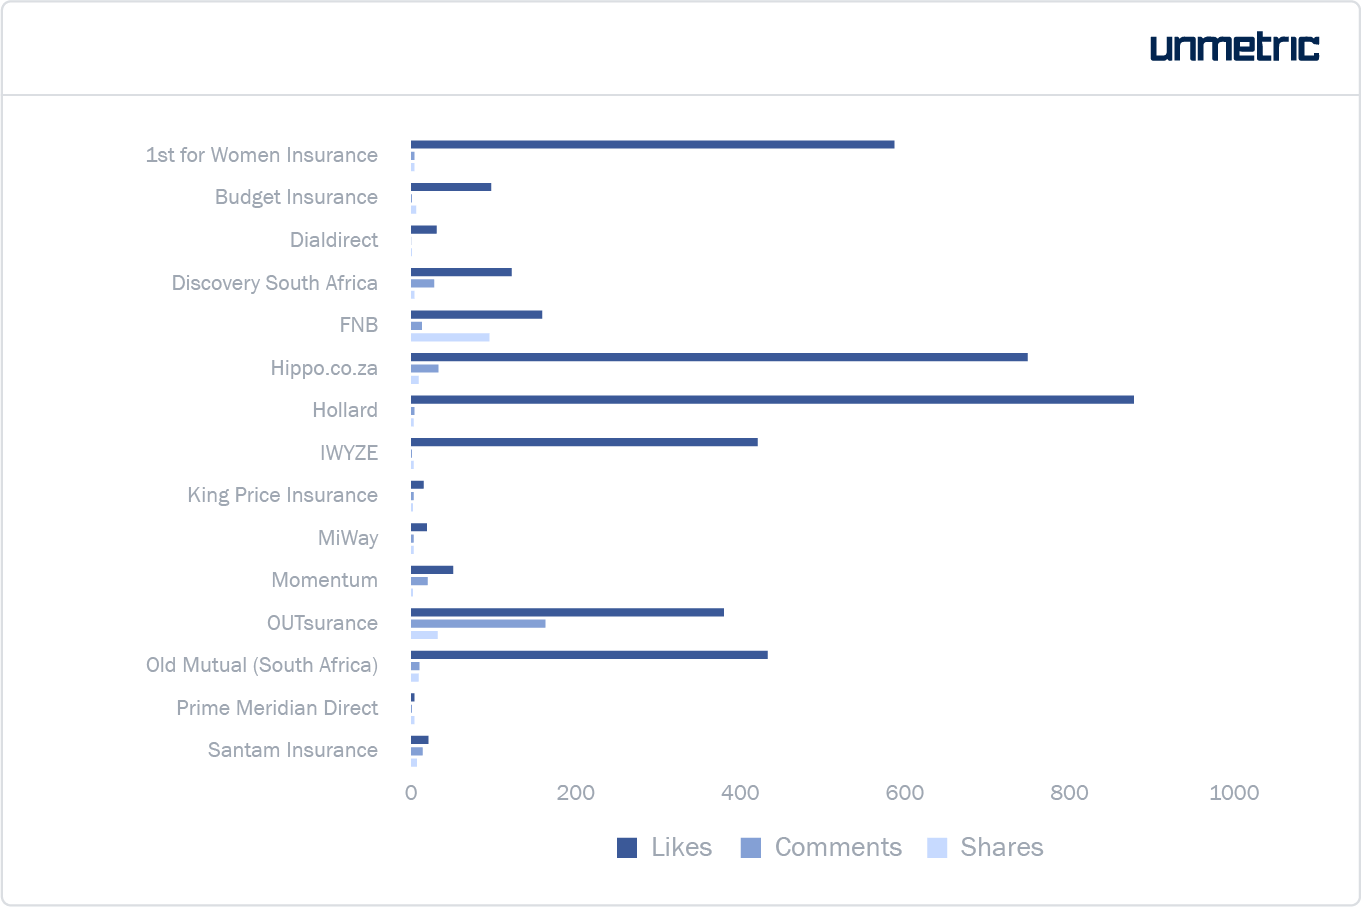 Average likes, comments and shares received by each insurance brand